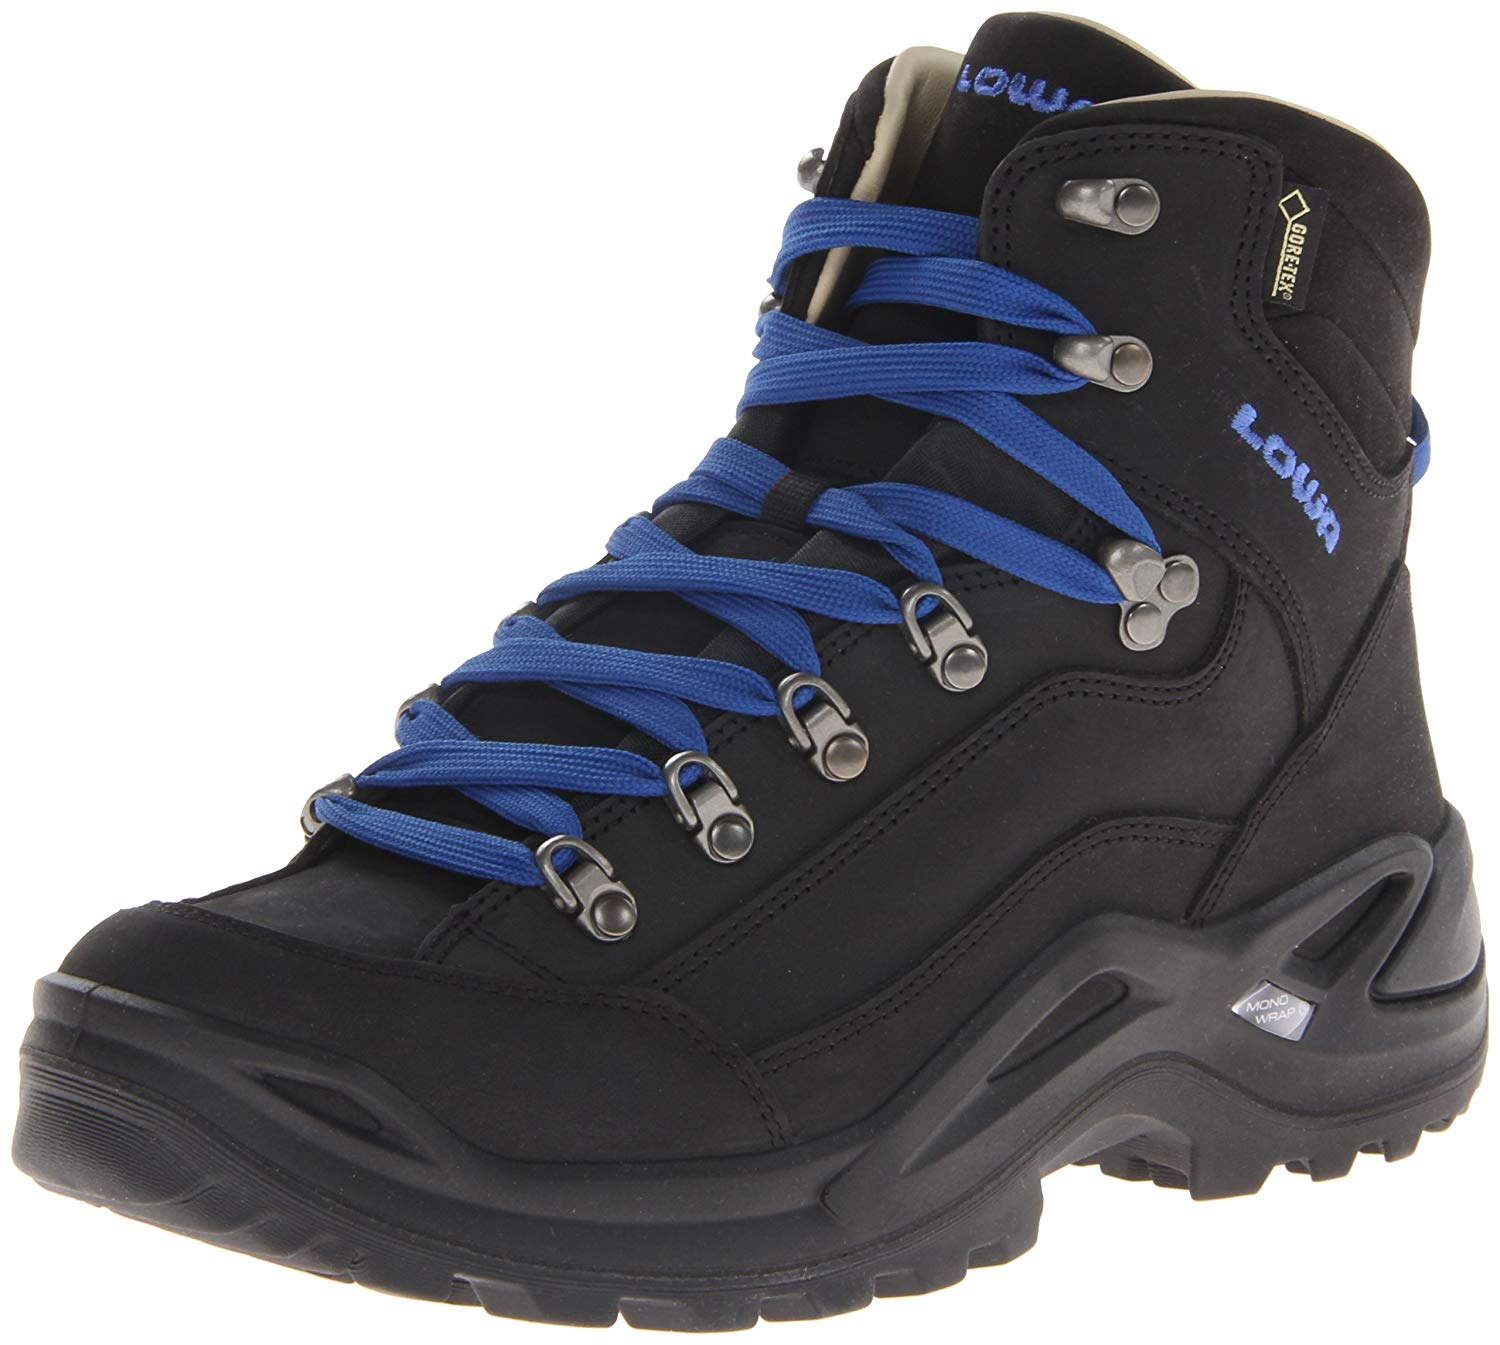 f31f7c93a0d Cheap Goretex Boot, find Goretex Boot deals on line at Alibaba.com